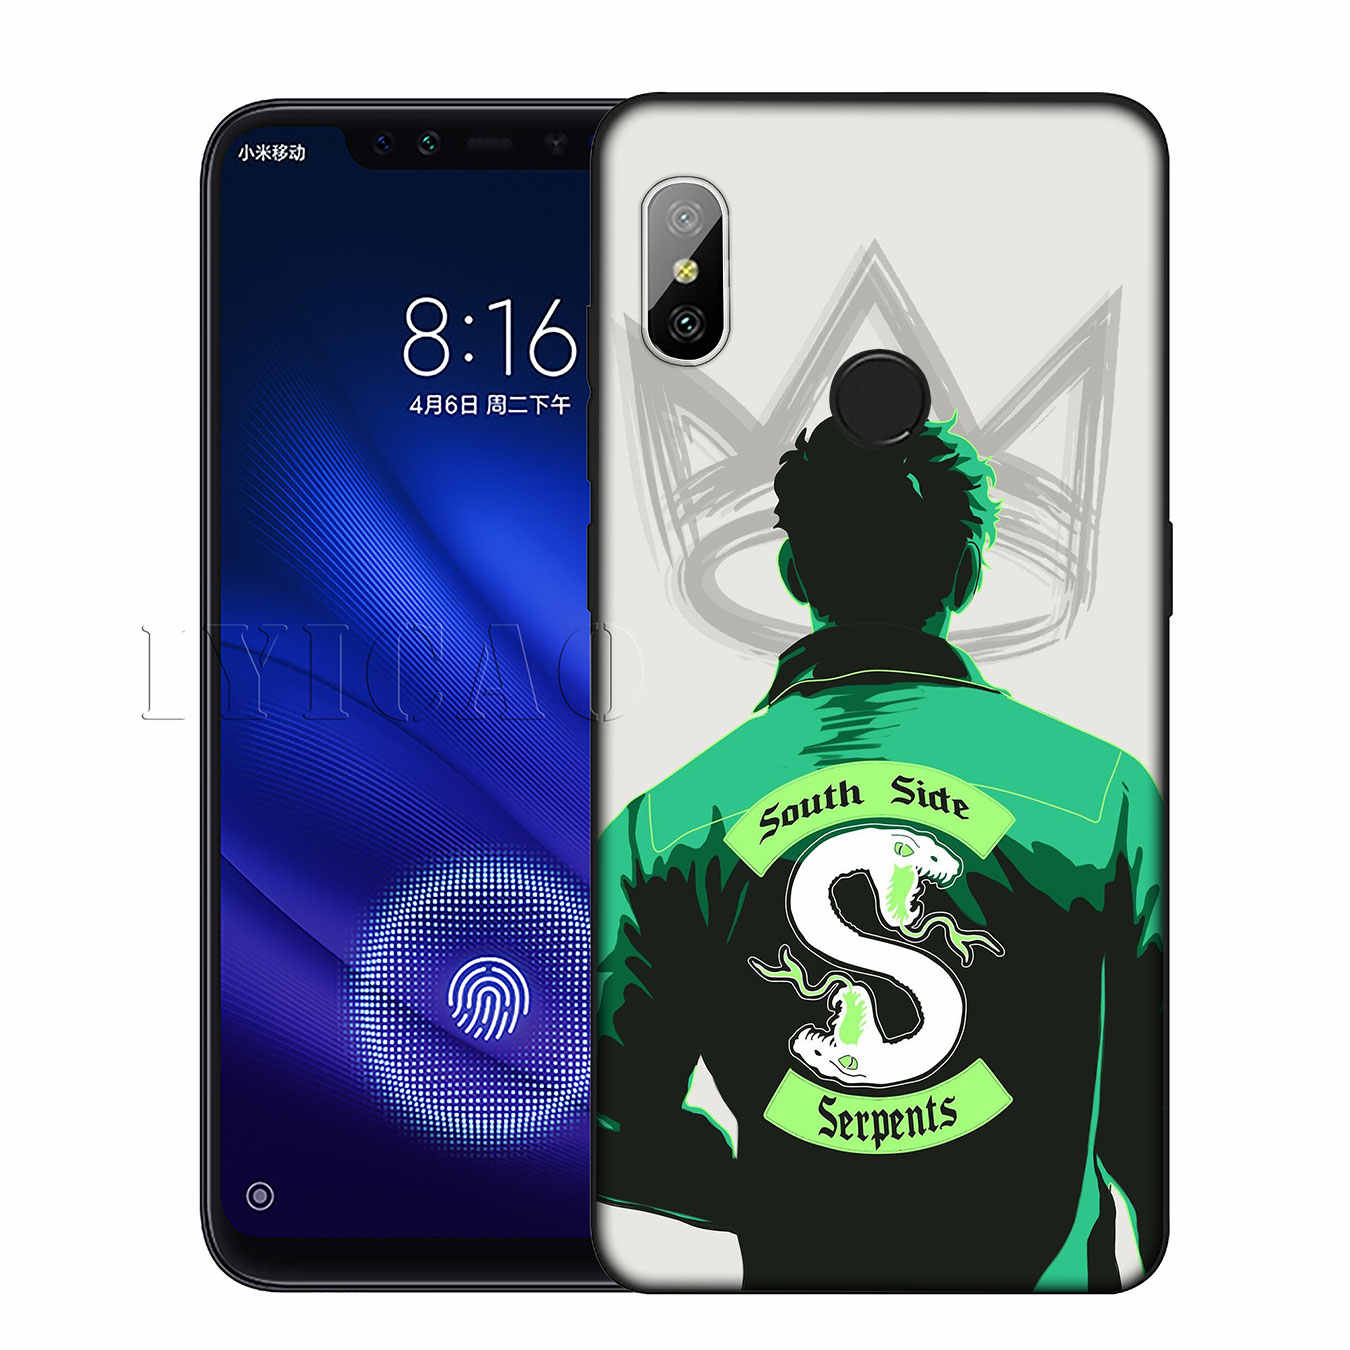 IYICAO Riverdale South Side Snake Cover Silicone Soft Case for Xiaomi Redmi 6A 5A Note 7 4 4X 5 Plus 6 Pro Black TPU Cover